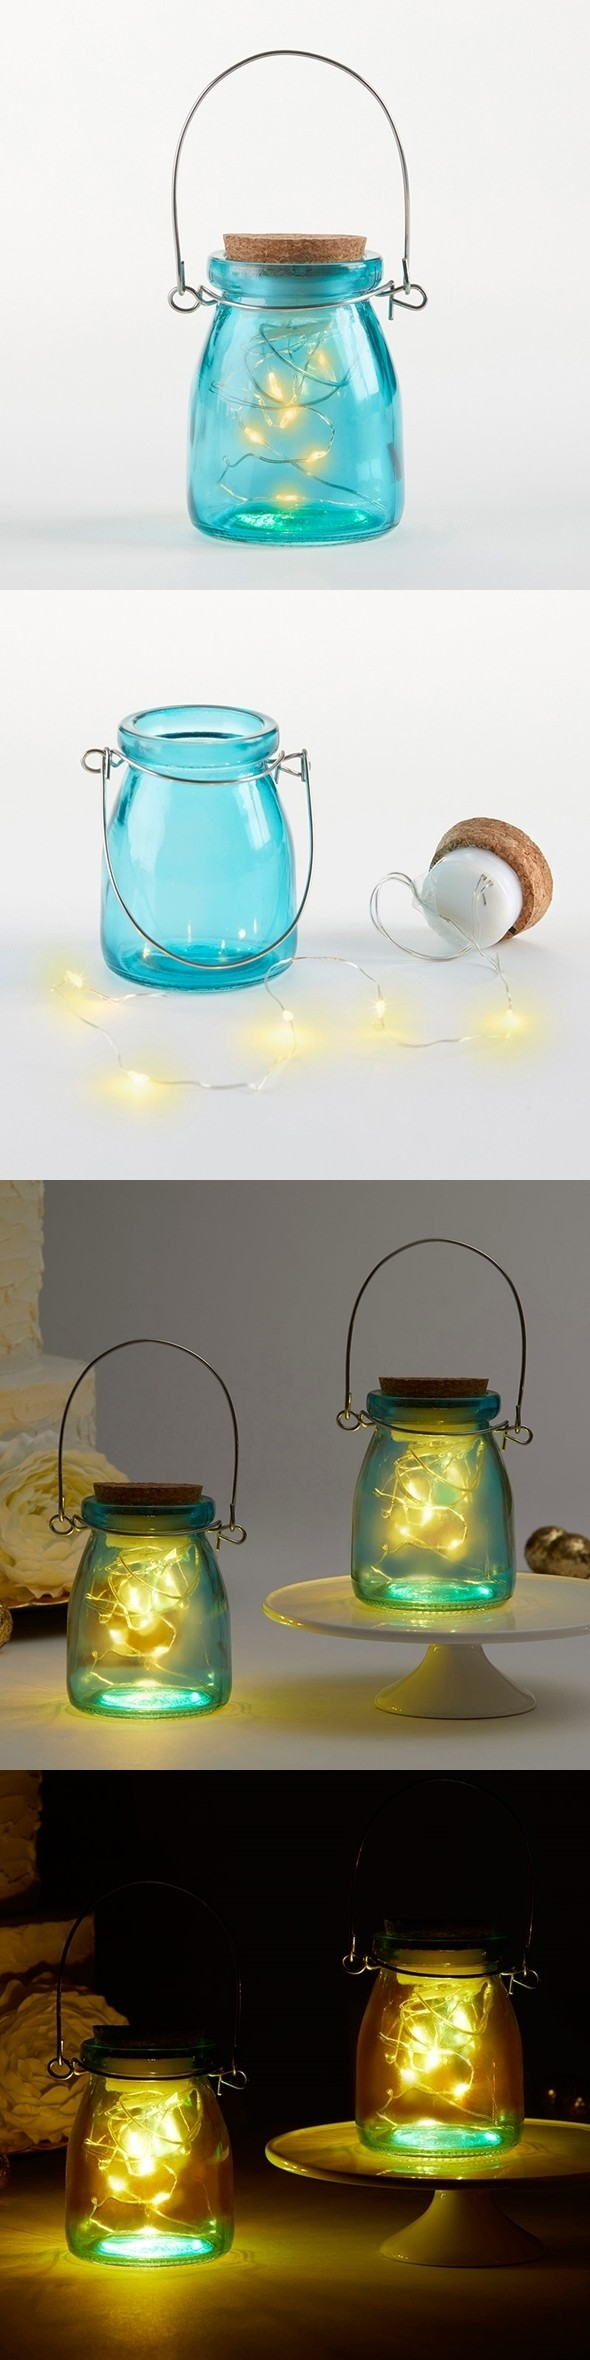 Kate Aspen Hanging Blue-Glass Jars With Fairy Lights (Set of 4)